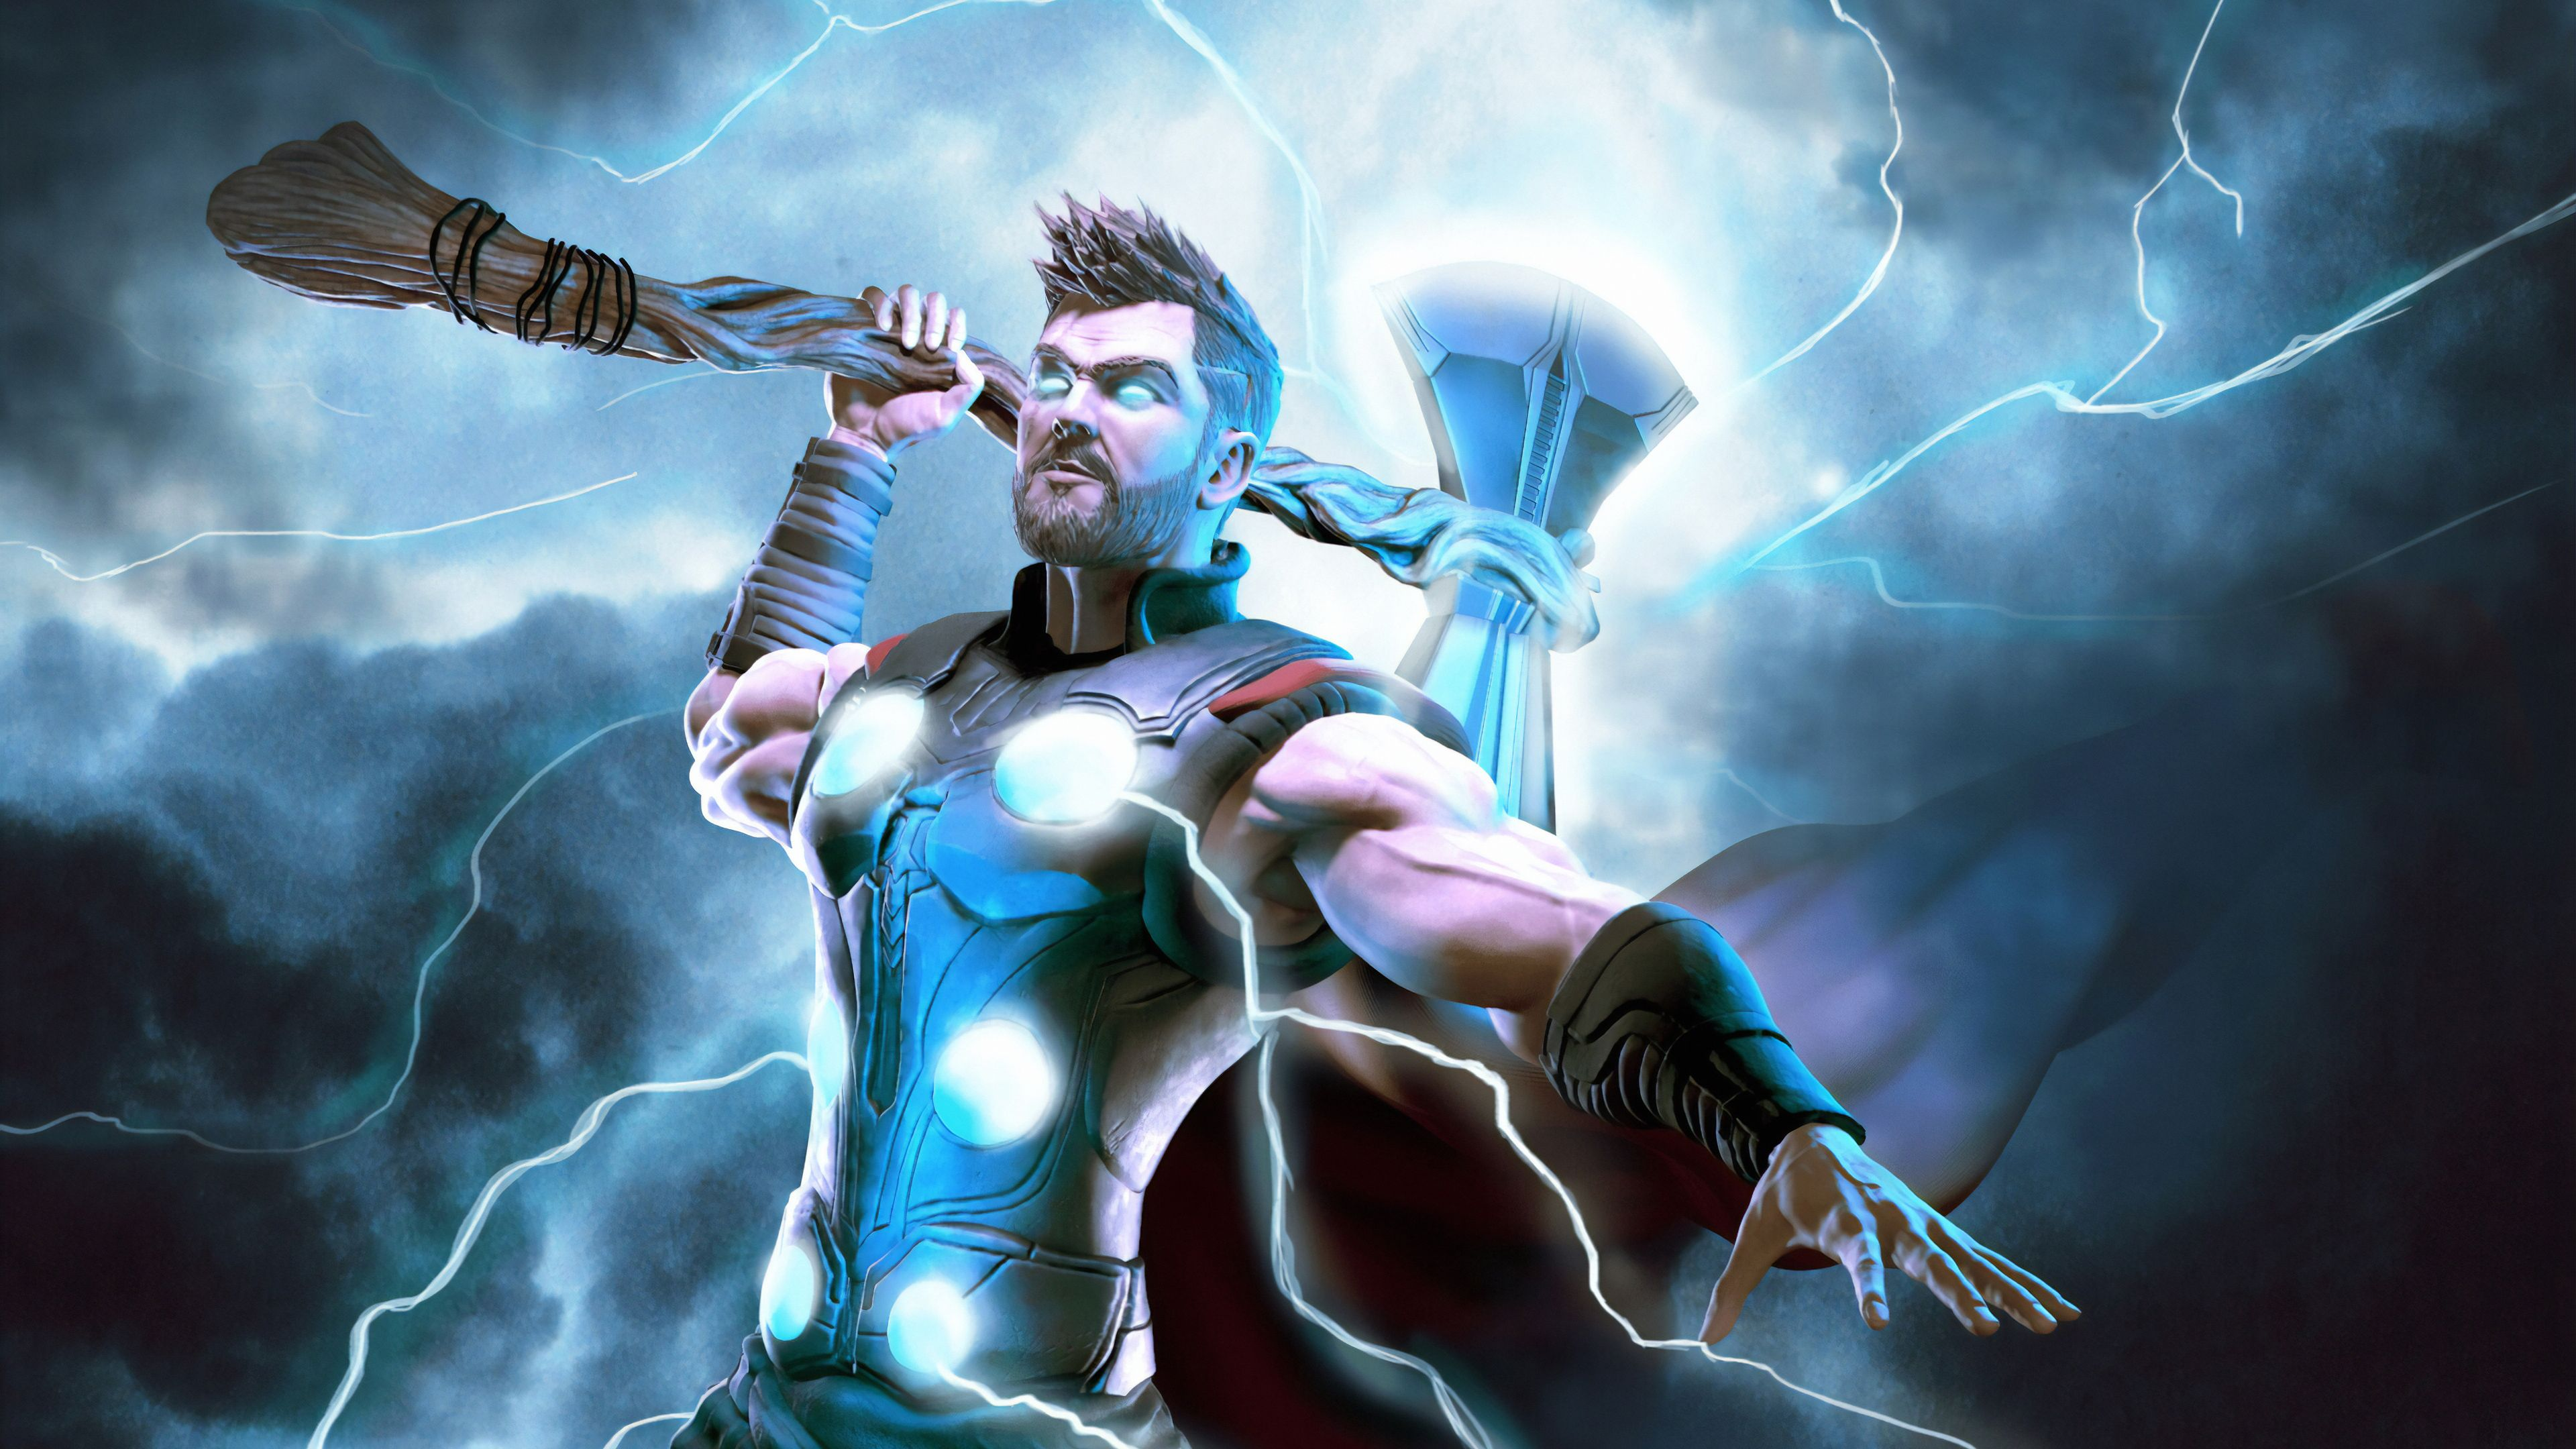 Thor Hd Wallpapers For PC